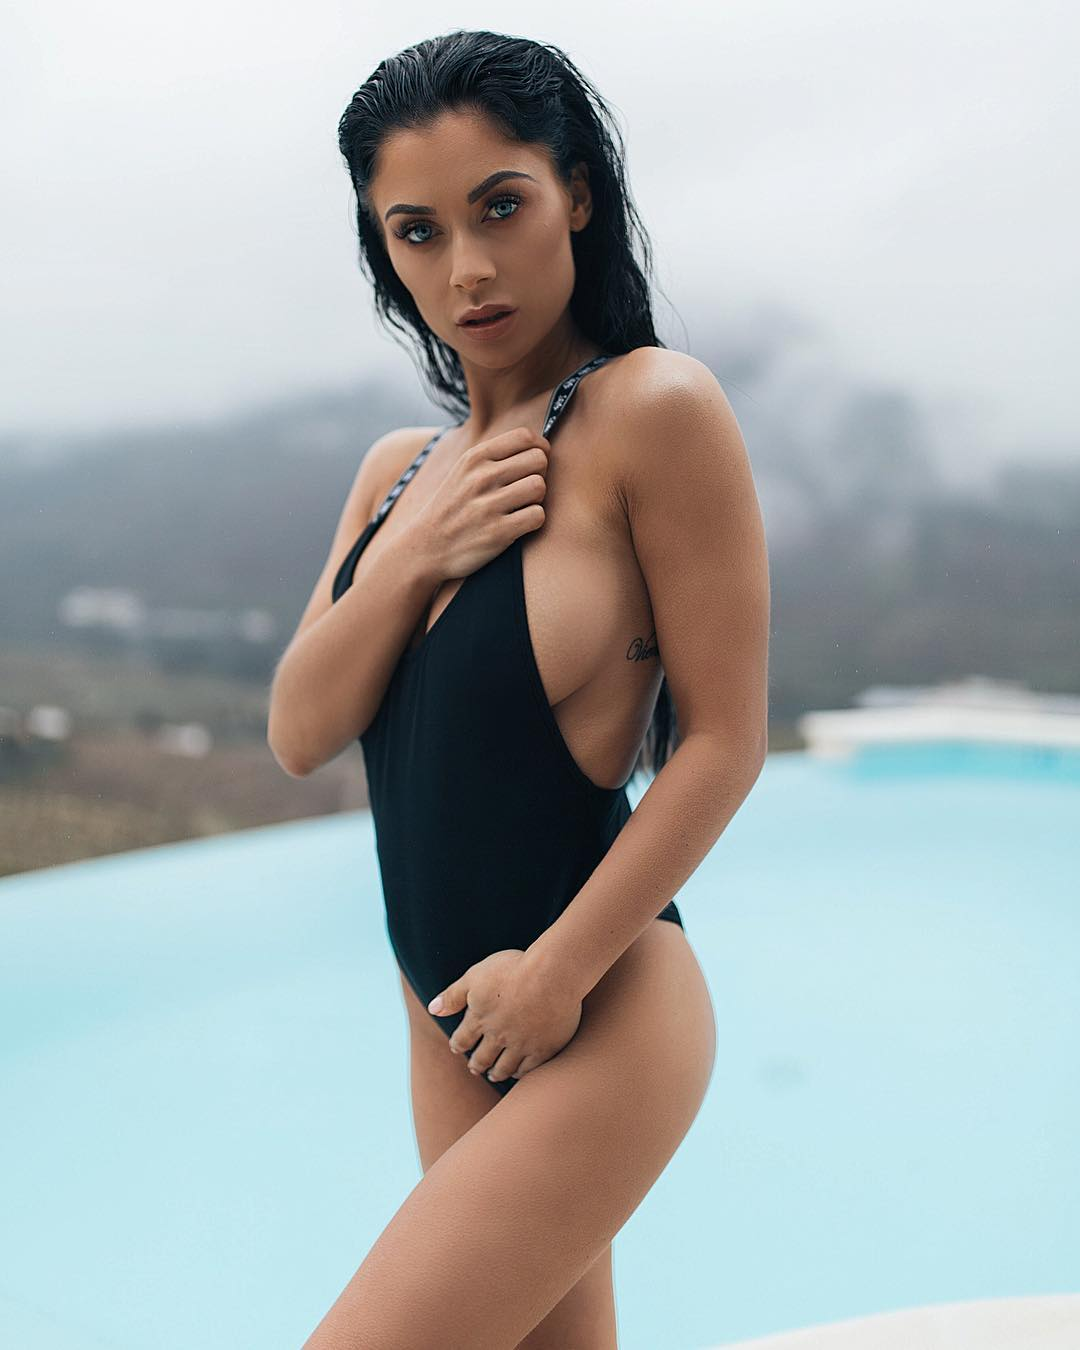 Pics Cally Jane Beech nude (87 foto and video), Topless, Leaked, Instagram, bra 2006